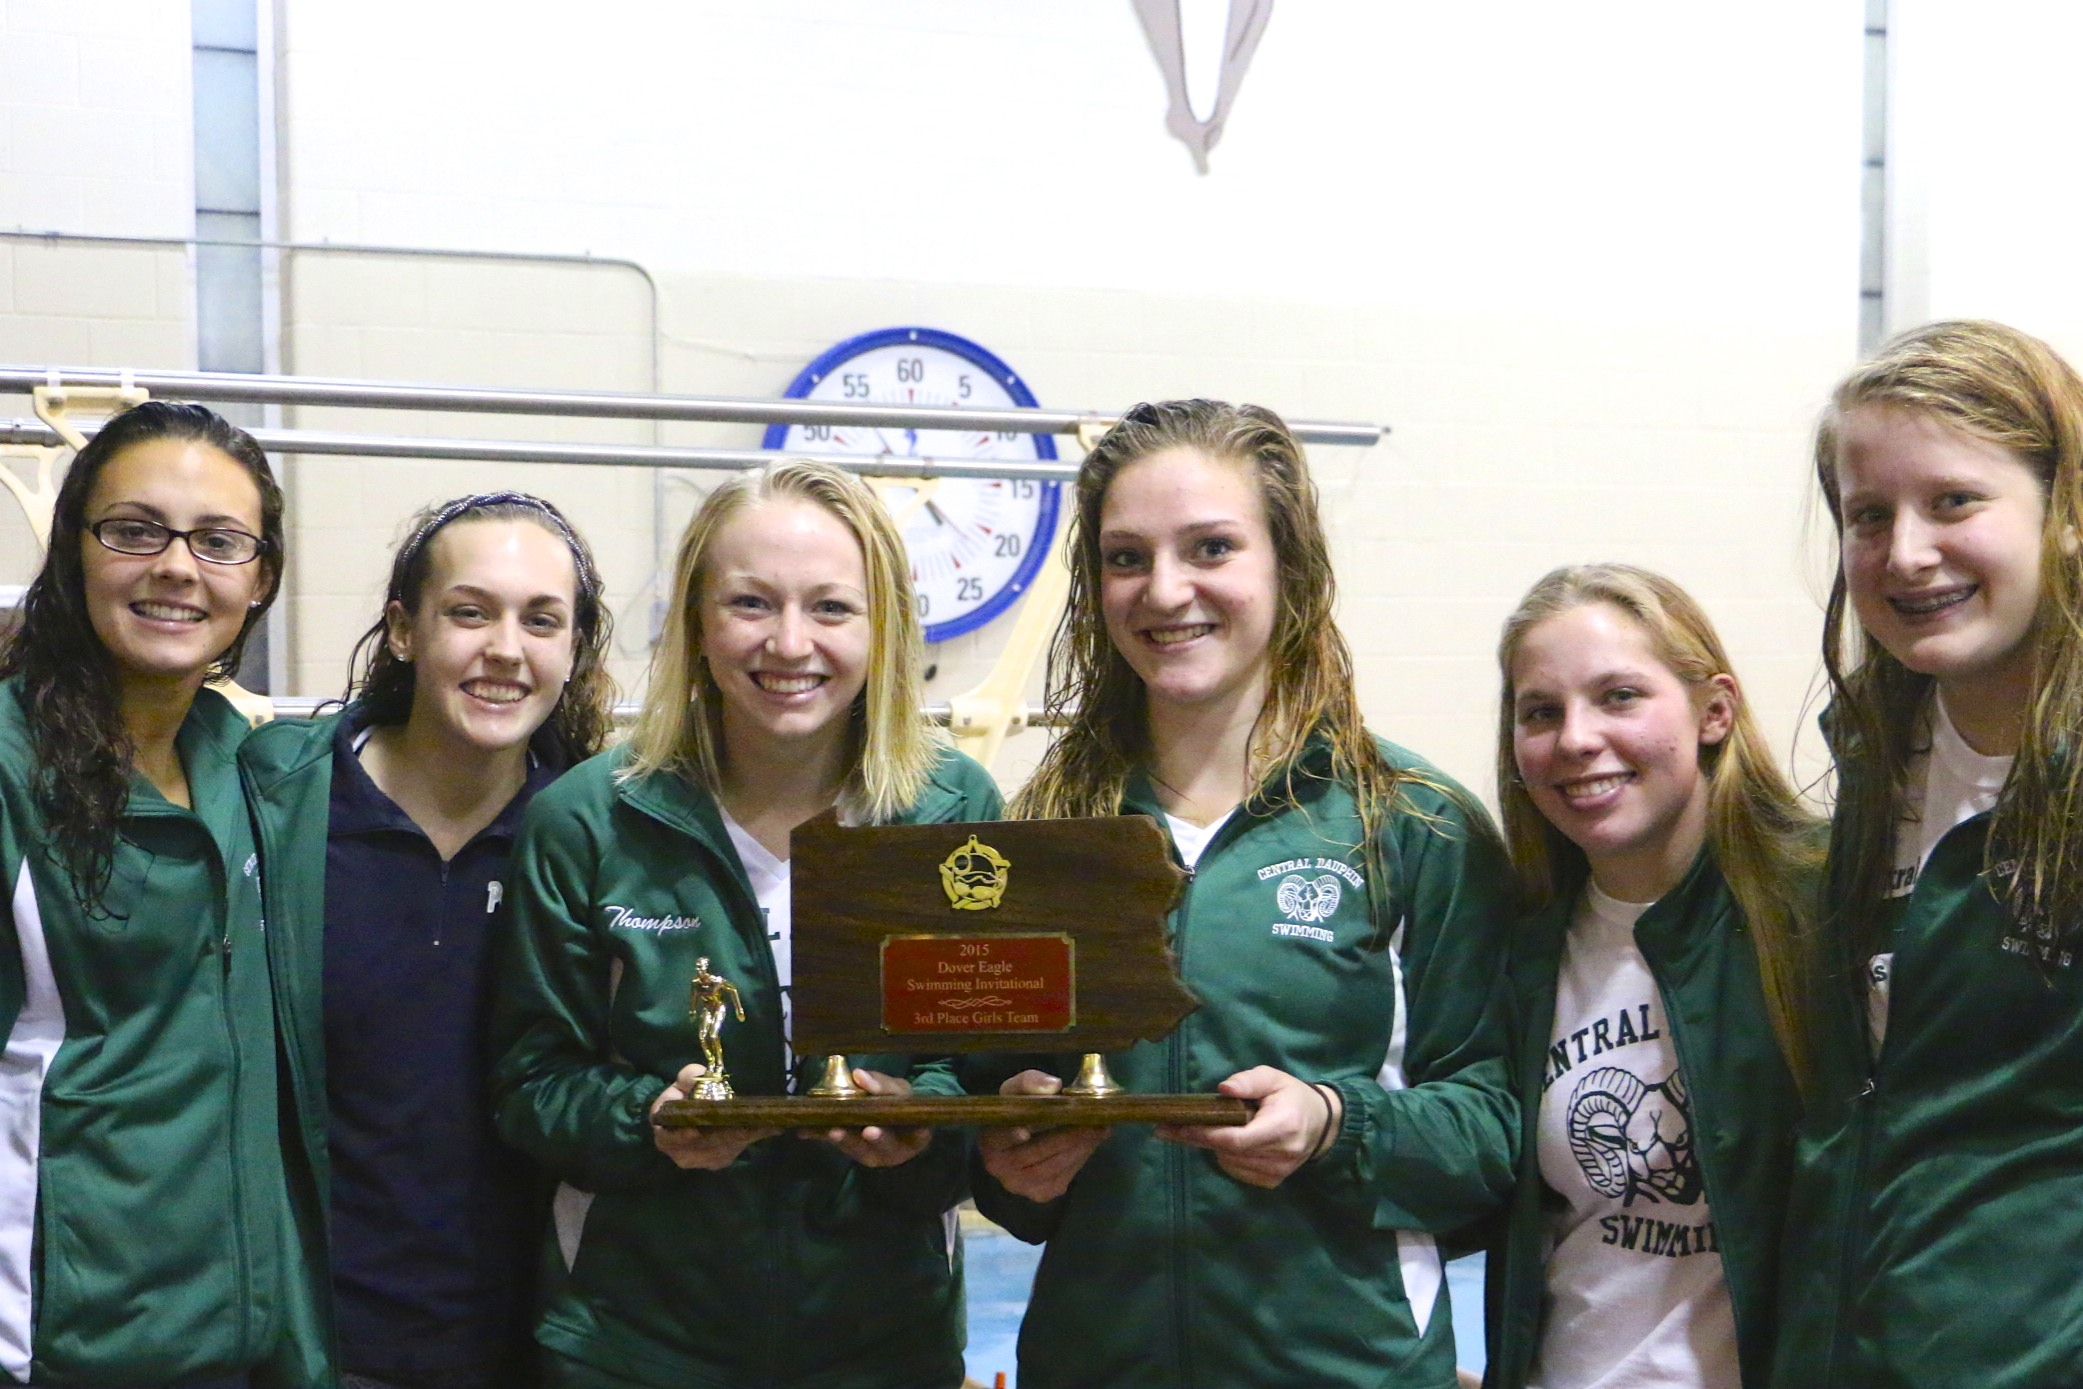 26th Annual Dover Eagle Invitational Central Dauphin Results Central Dauphin Swimming